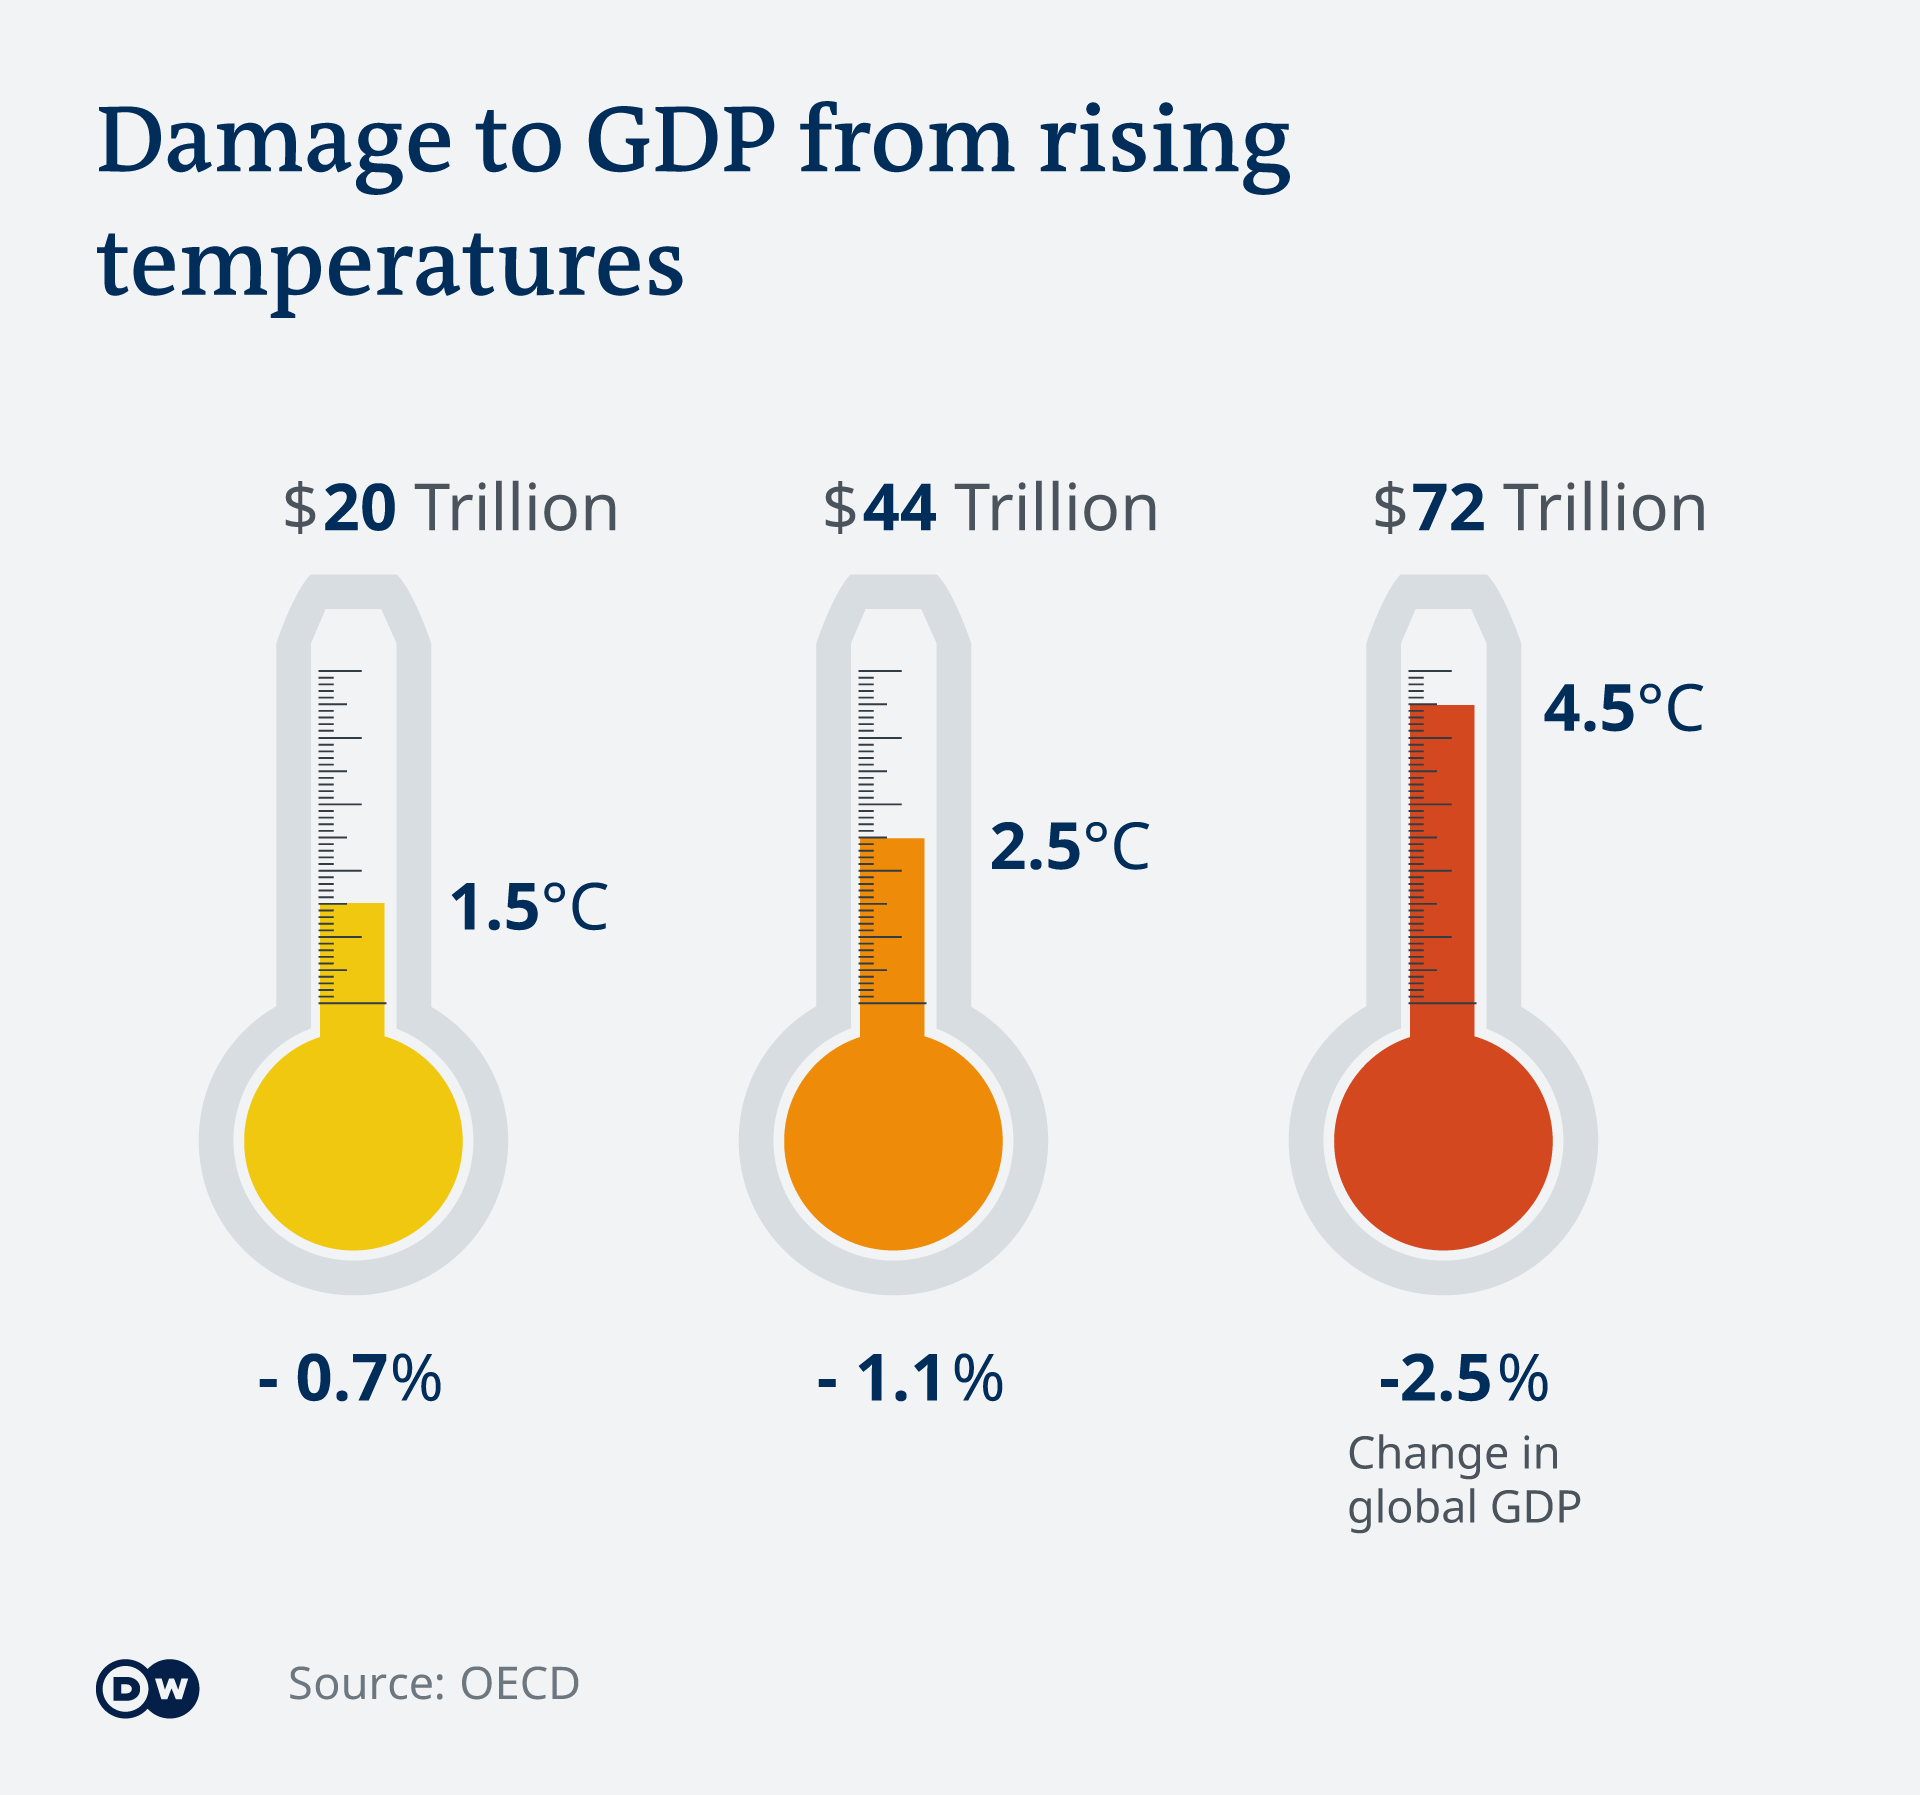 Graphic showing GDP losses from rising temperatures